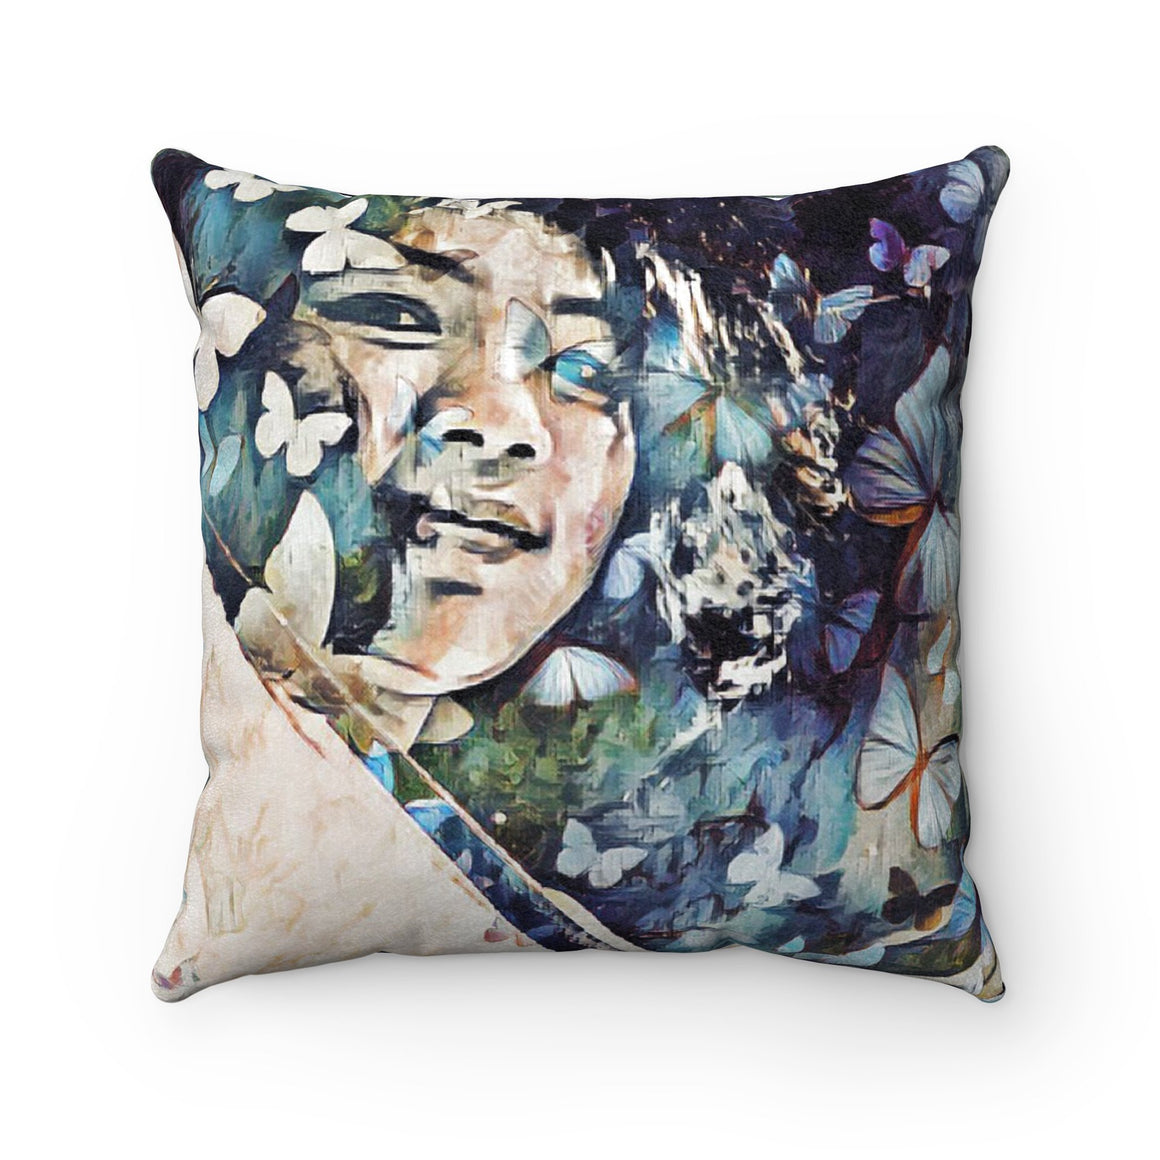 Levi Thang Vintage Face Design P Faux Suede Square Pillow Case